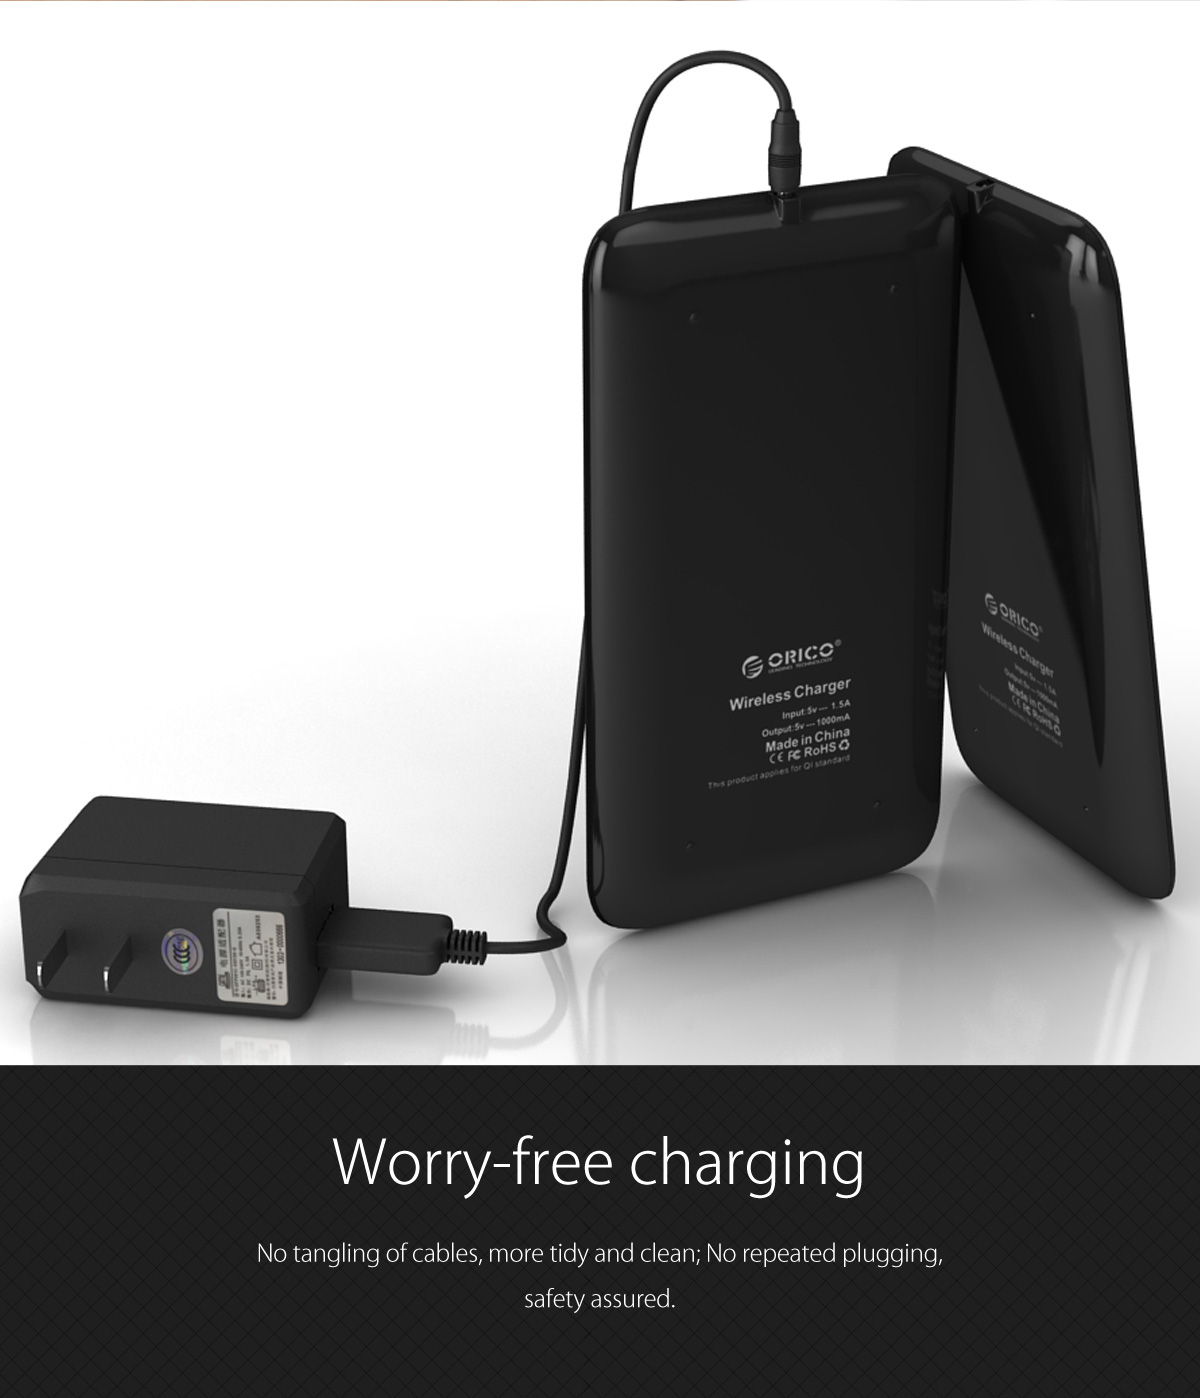 worry-free charging, tidy and clean